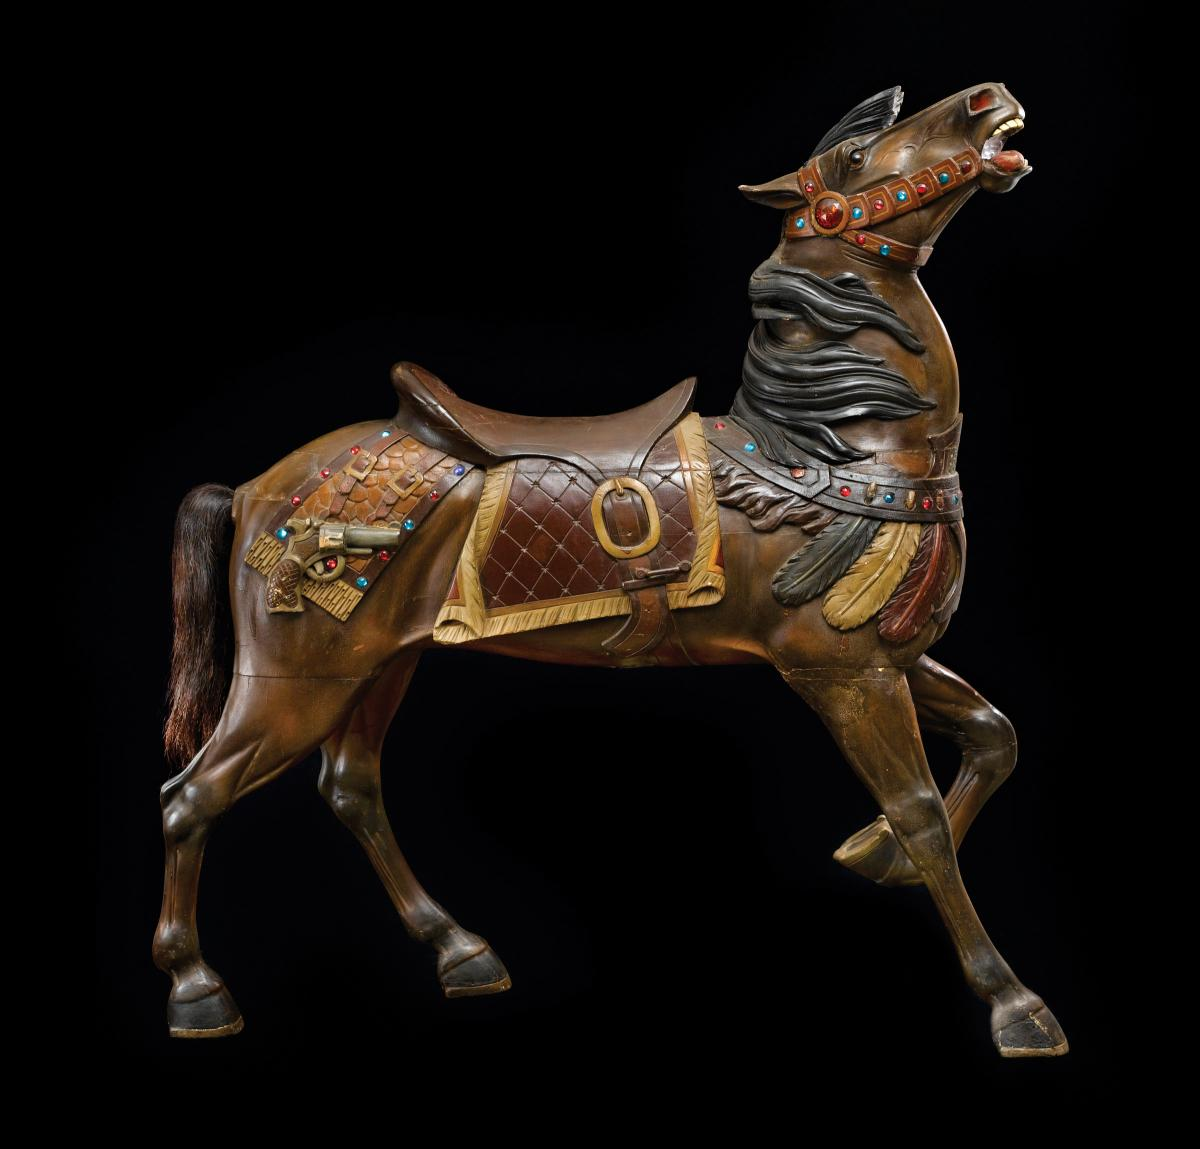 A wooden carousel horse with a raised head, made by Charles Carmel. Done in brown wood, wearing an elaborate saddle and halter